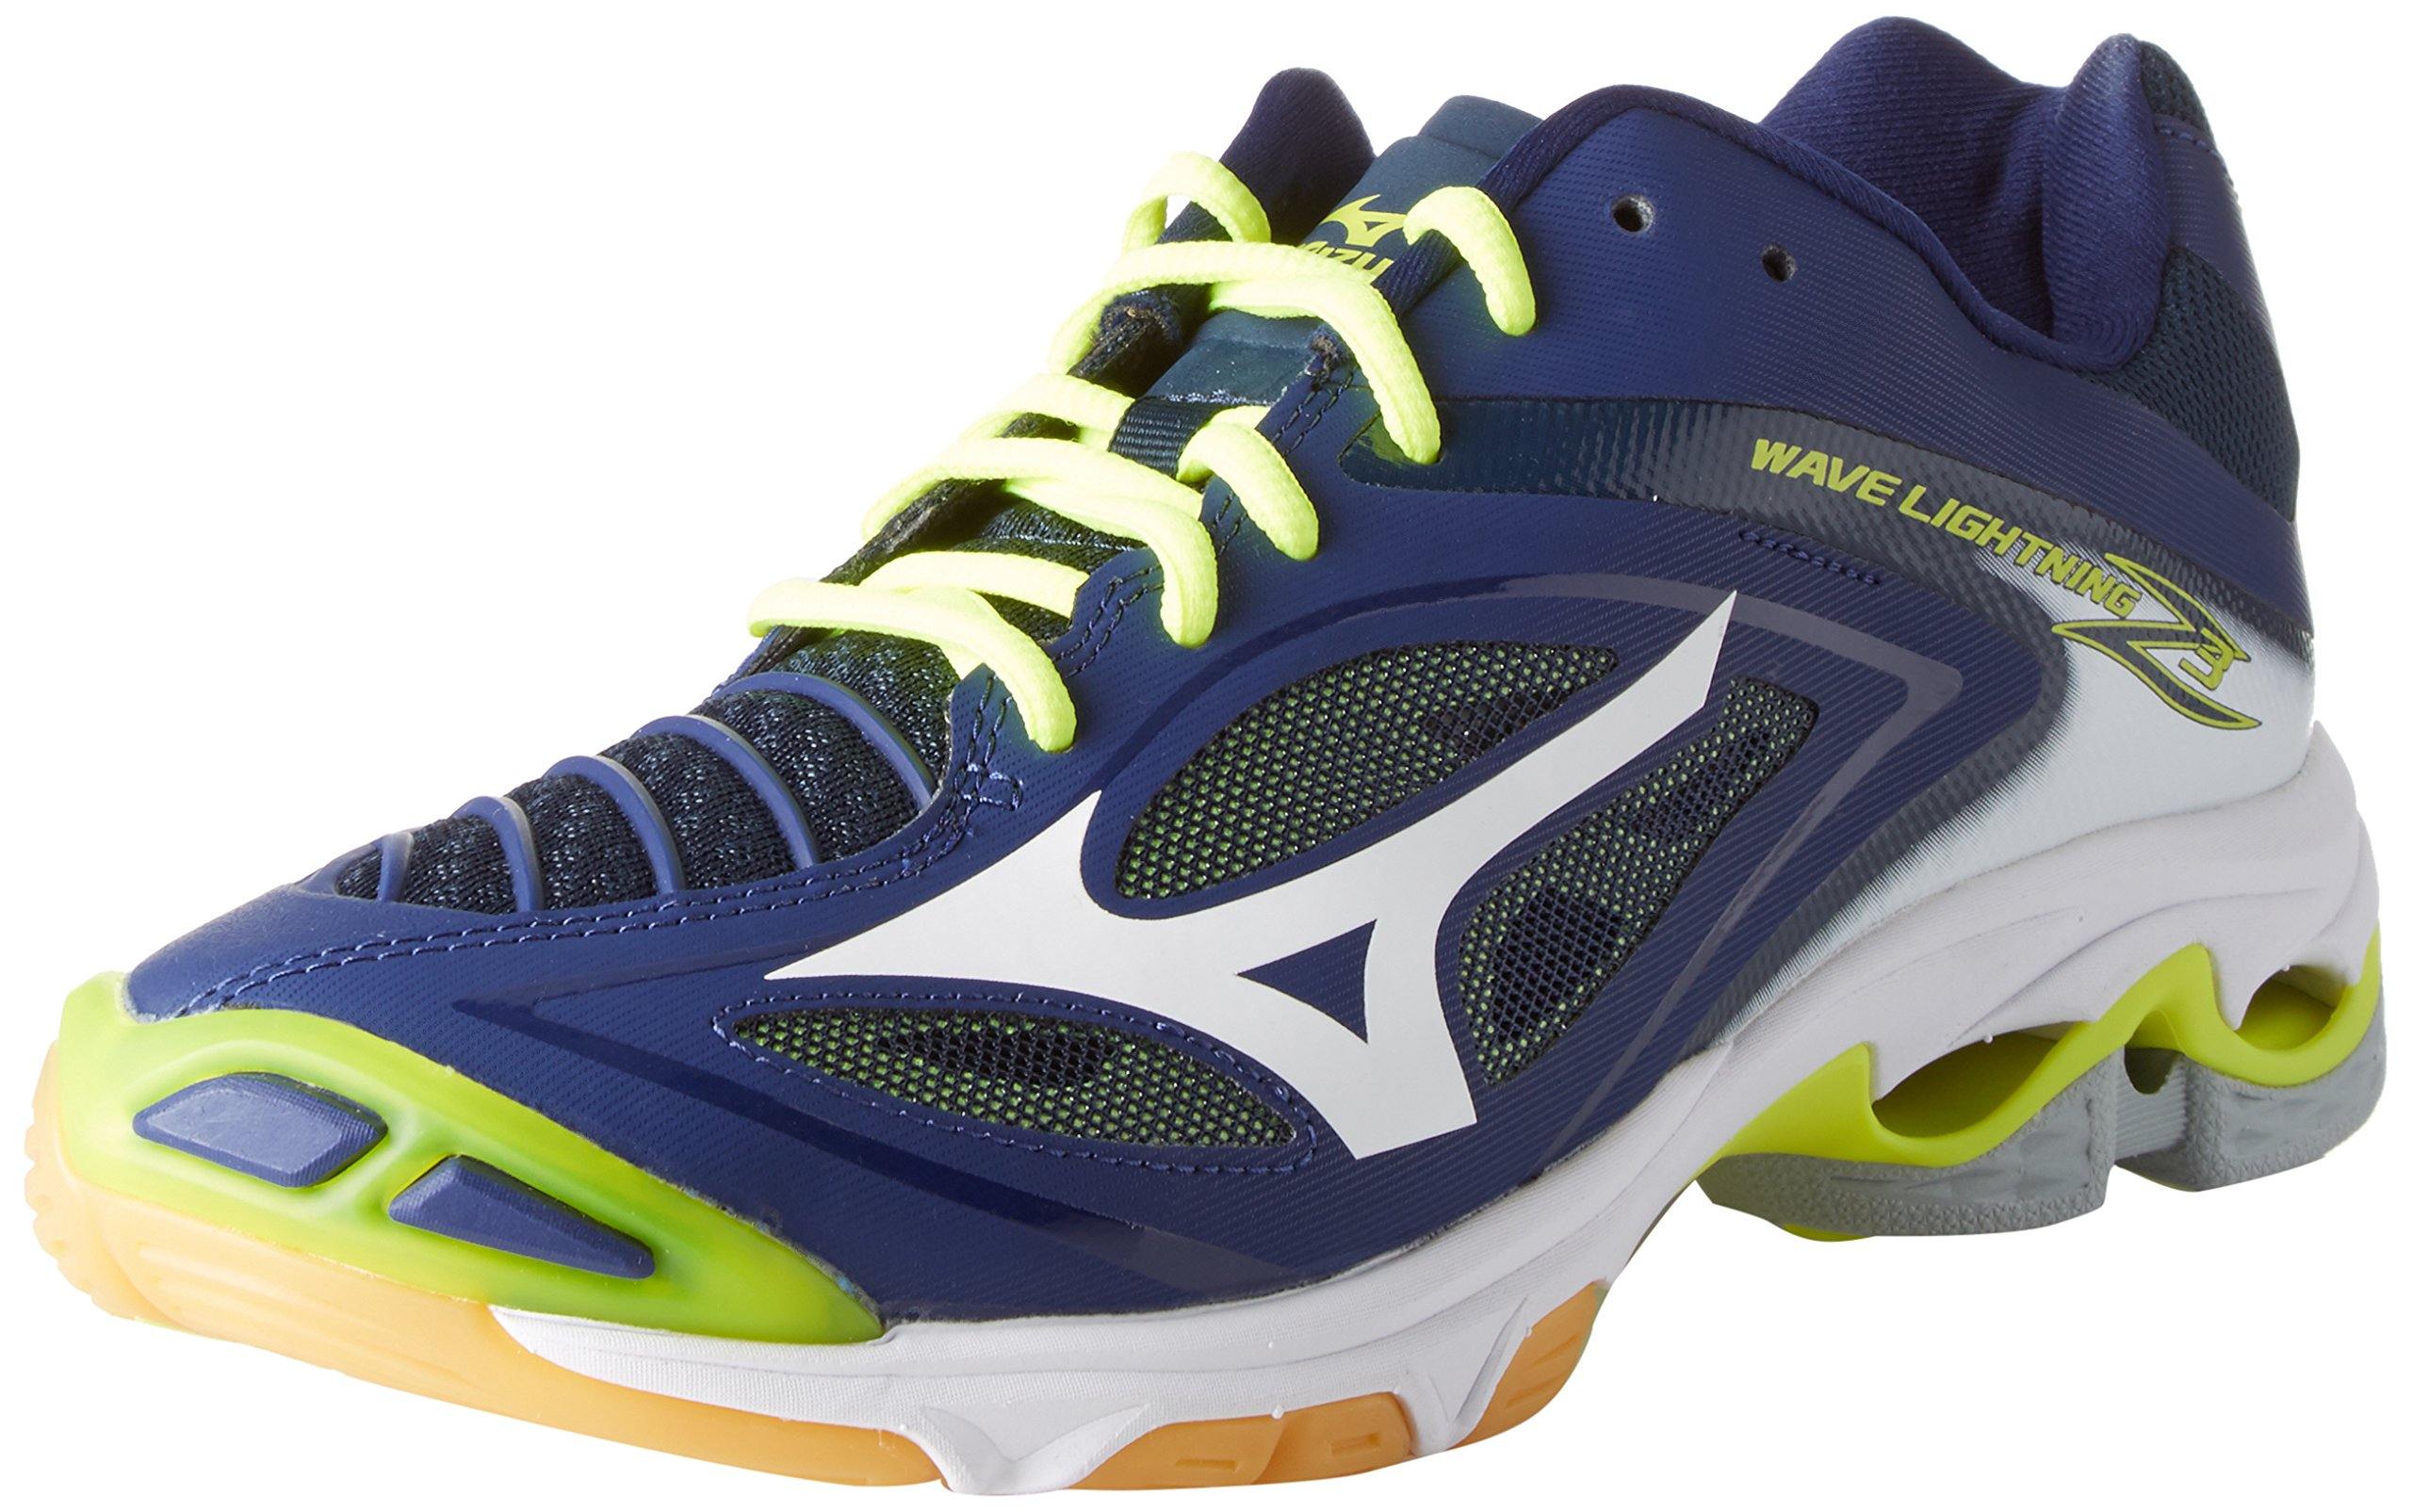 mizuno volleyball shoes navy and white uk